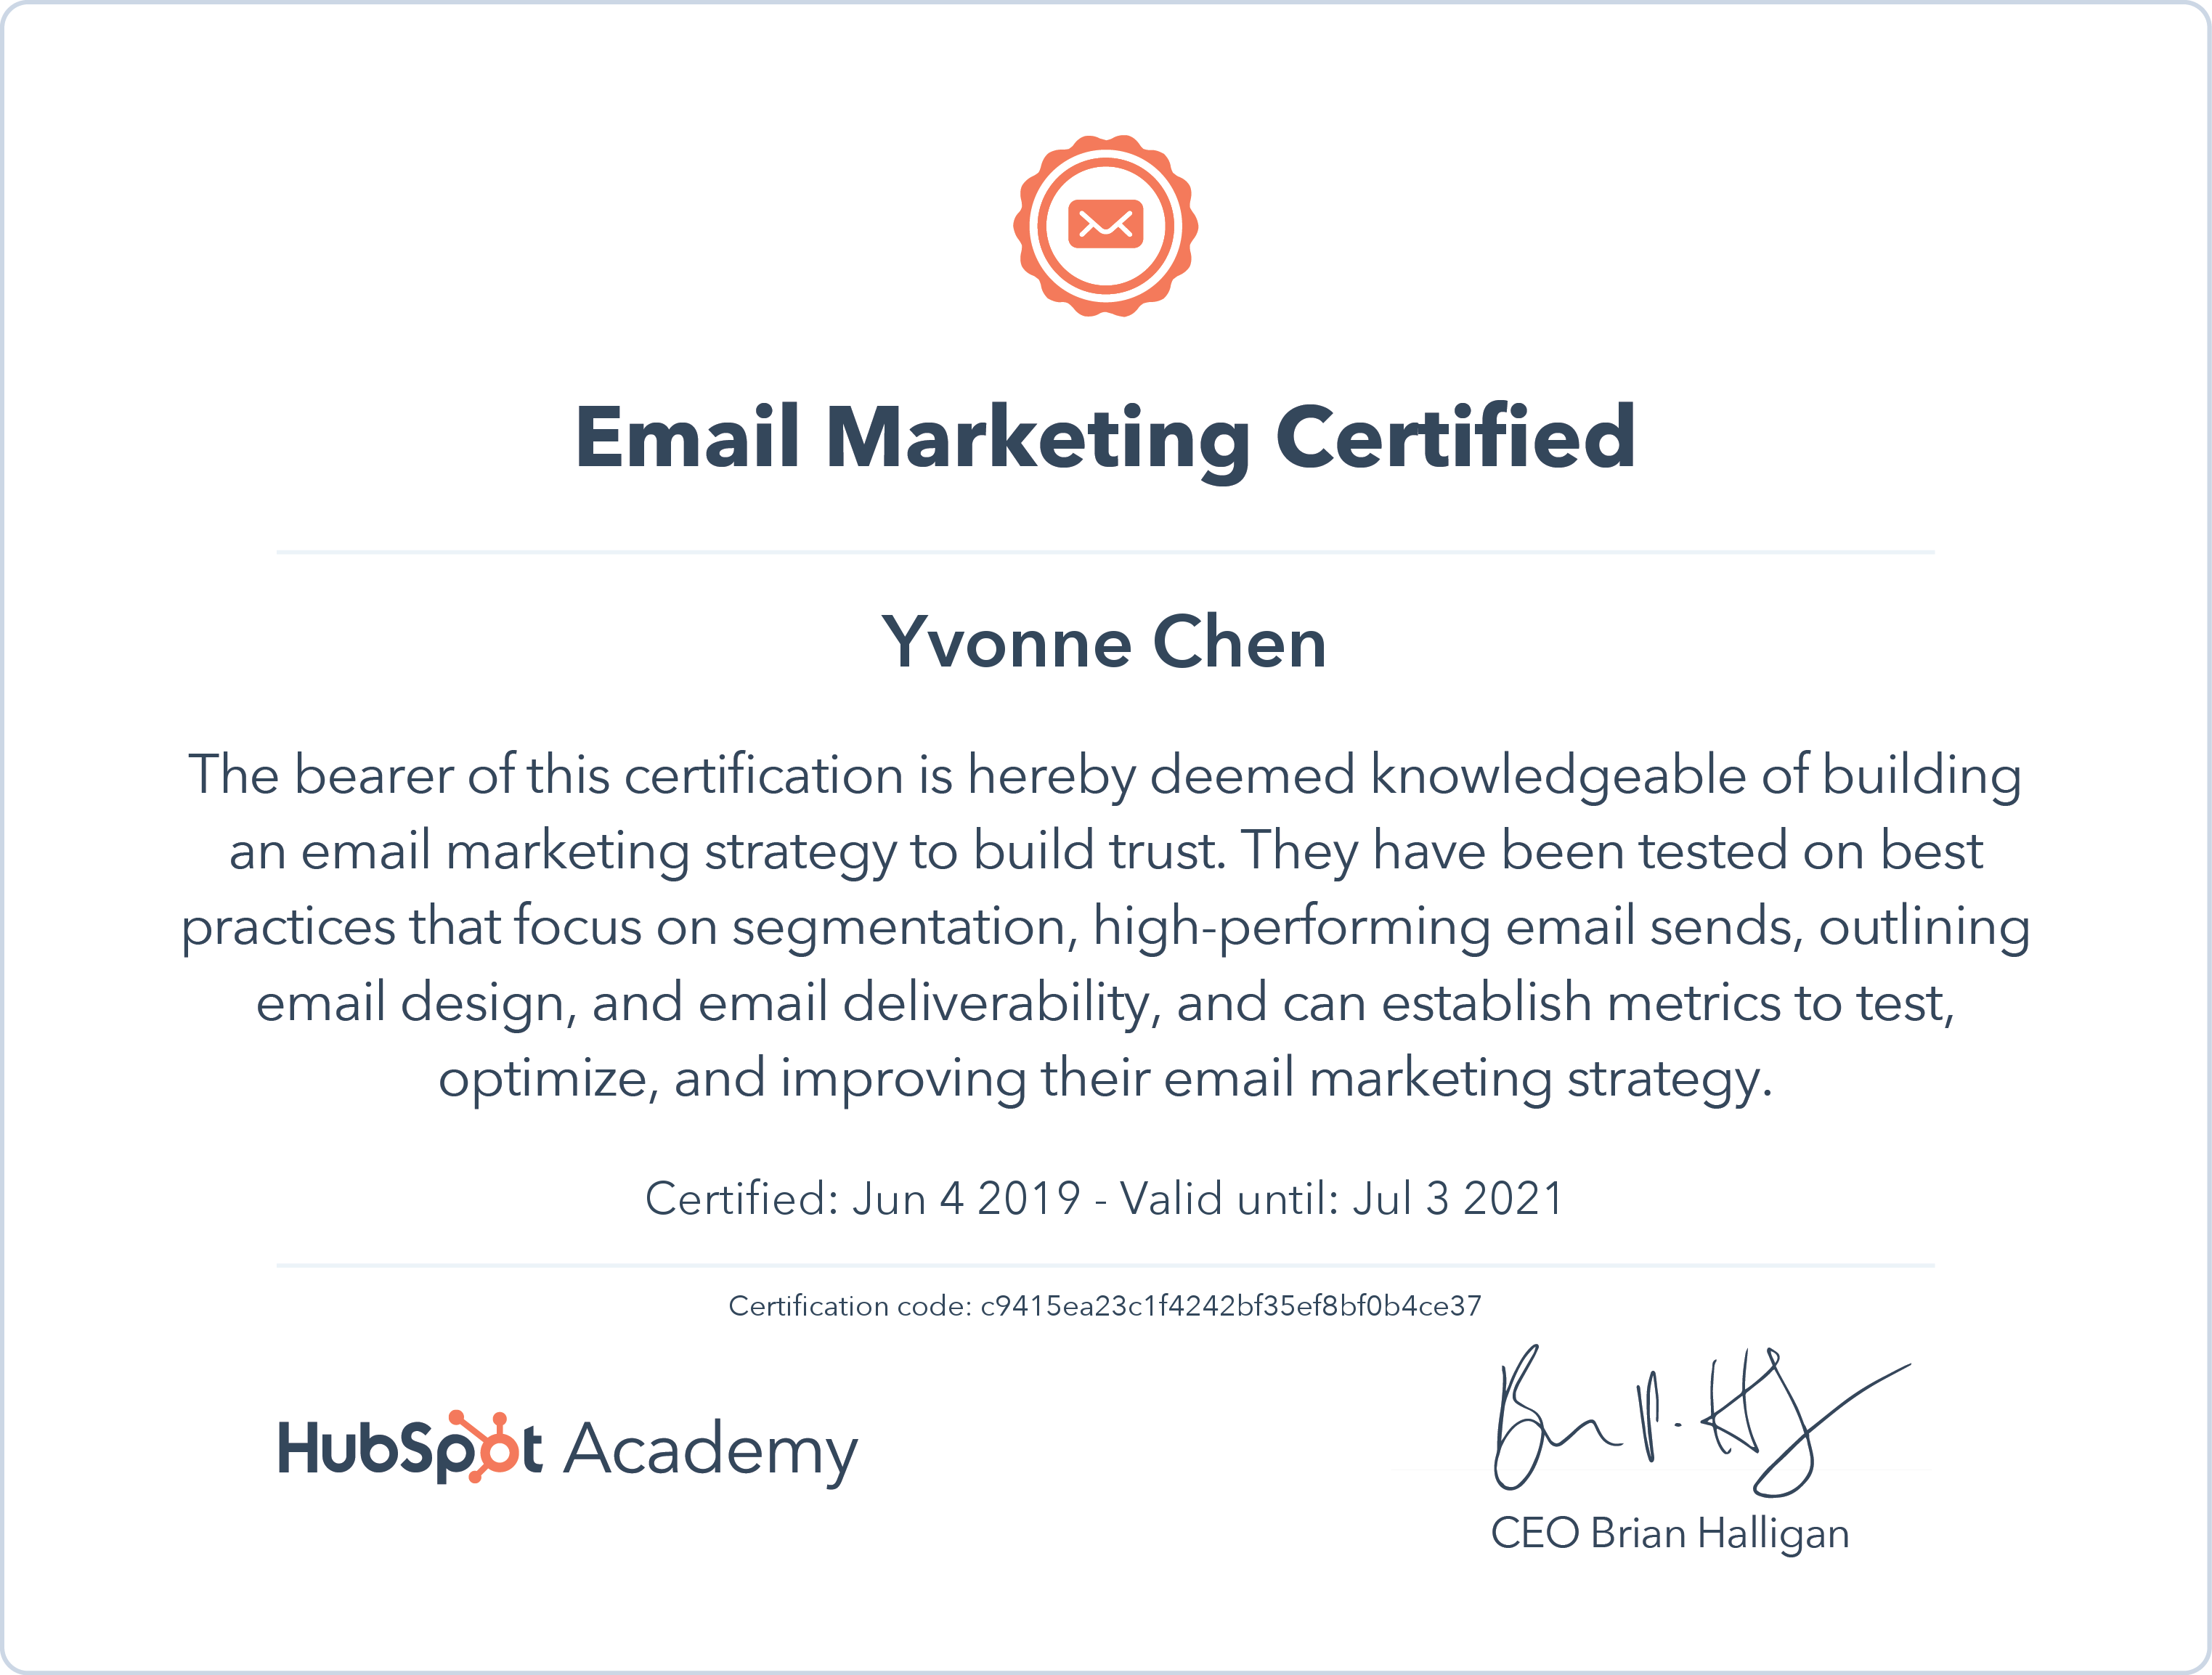 email-marketing-certified_yvonne